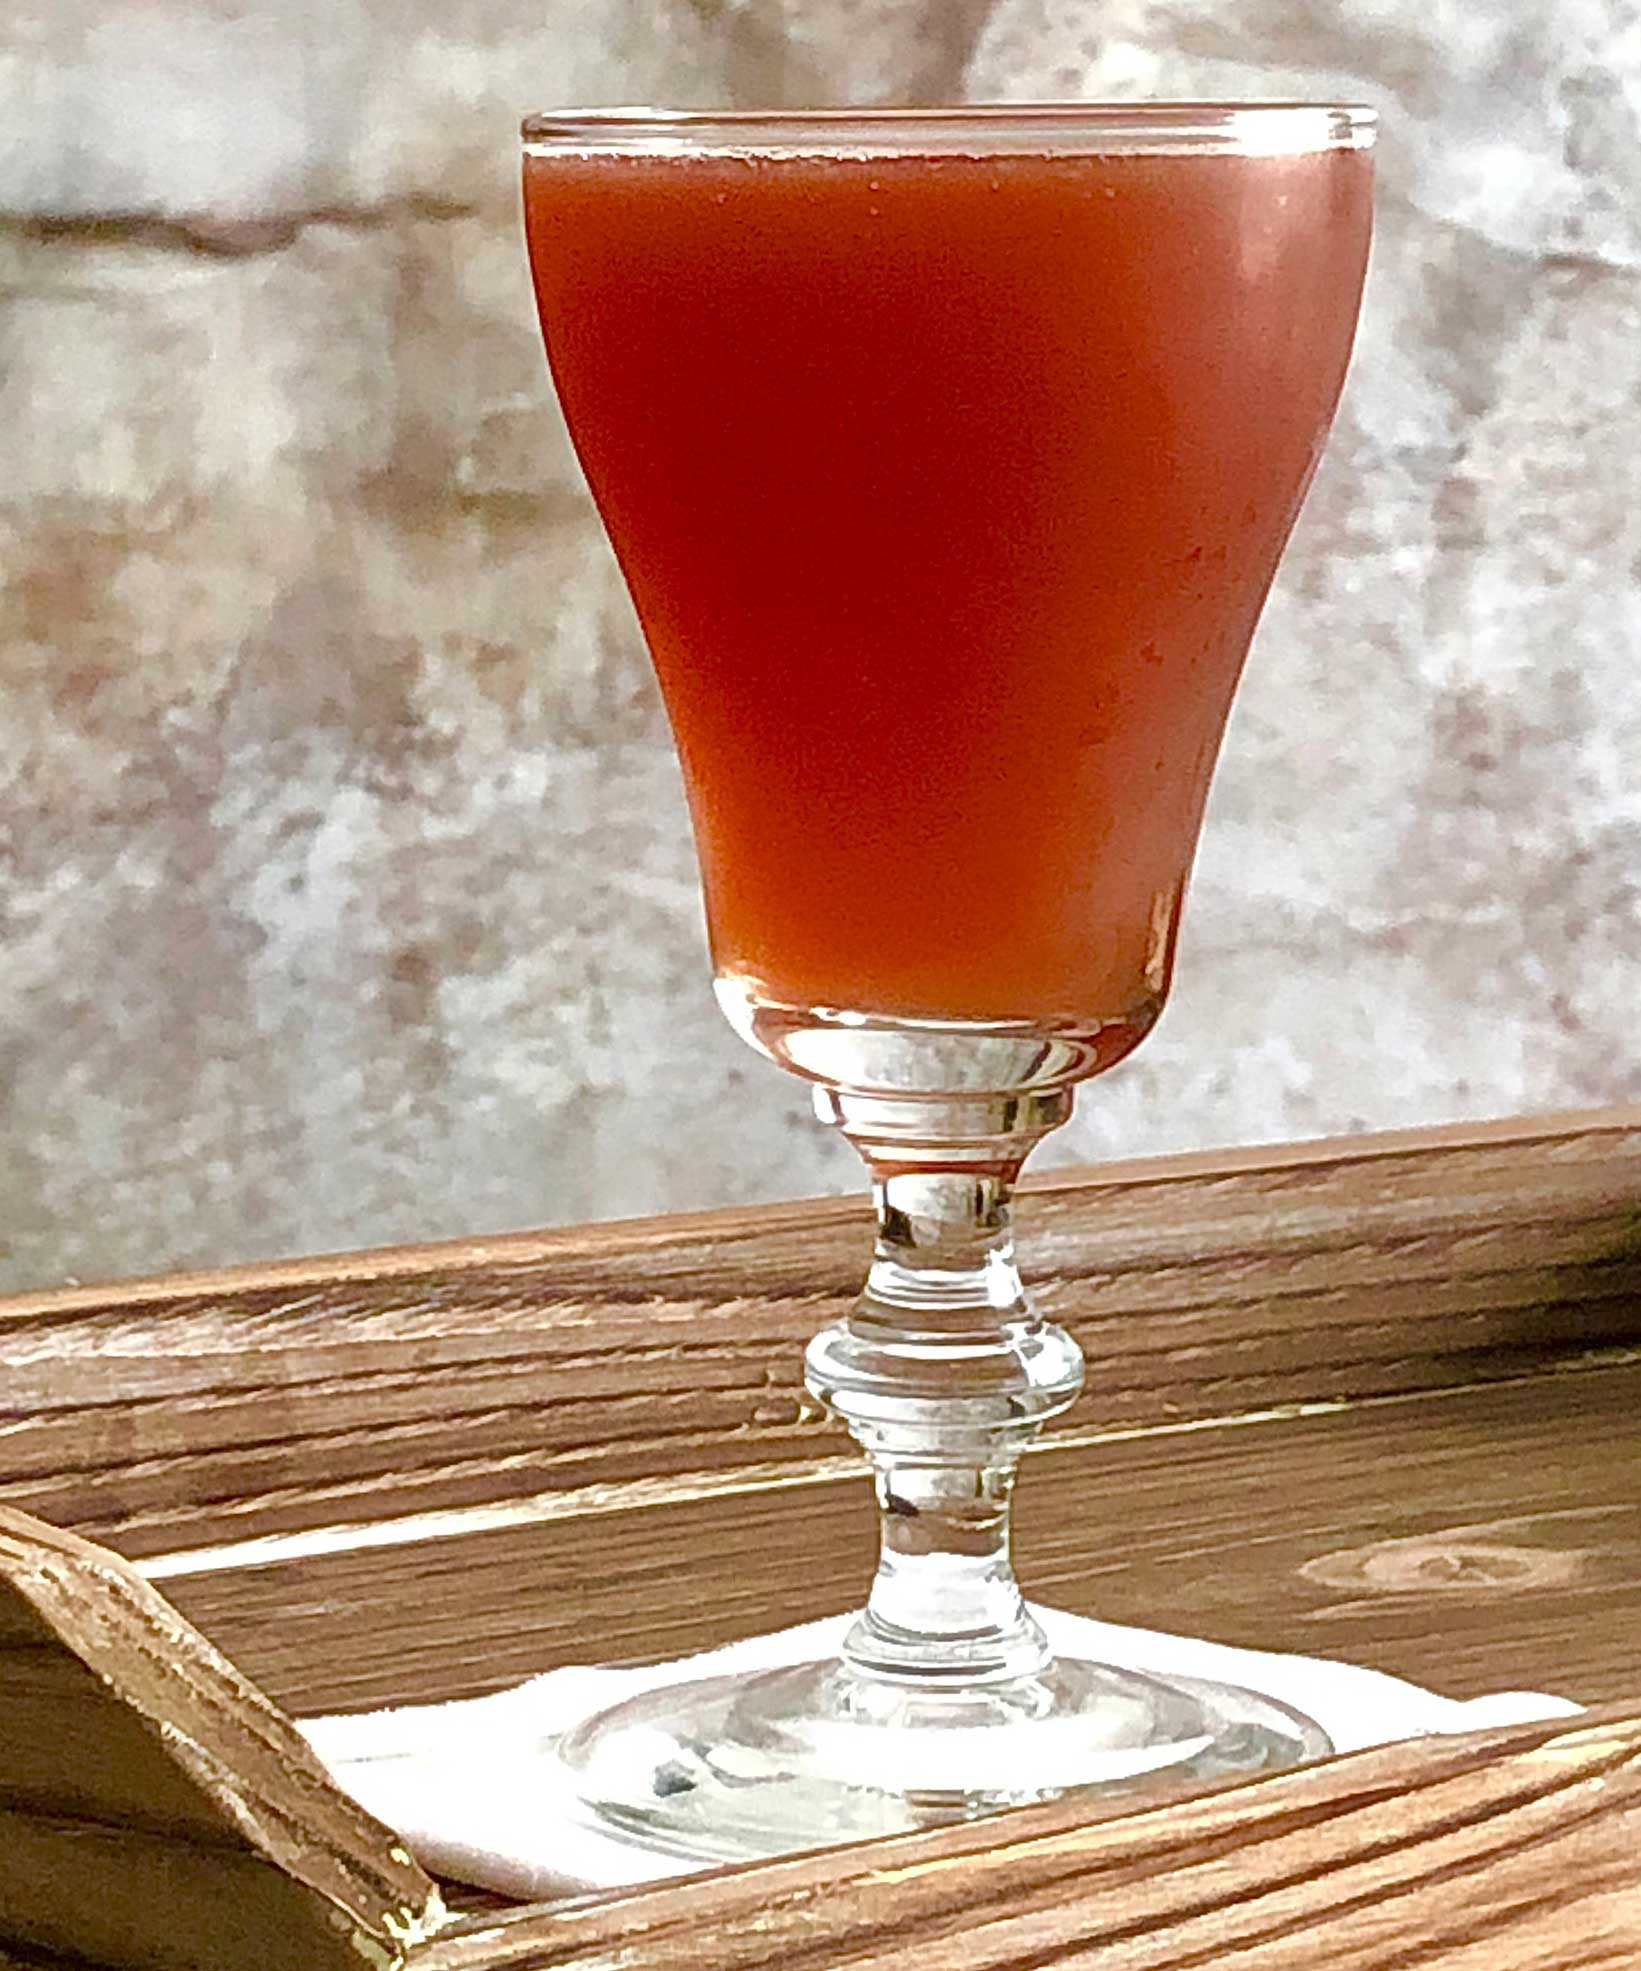 An example of the Plum Billet, the mixed drink (cocktail), variation on the Pruneaux cocktail, Savoy Cocktail Book, featuring Hayman's Royal Dock Navy Strength Gin, Terres des Templiers Rancio Sec, orange juice, Byrrh Grand Quinquina, simple syrup, and Angostura bitters; photo by Lee Edwards